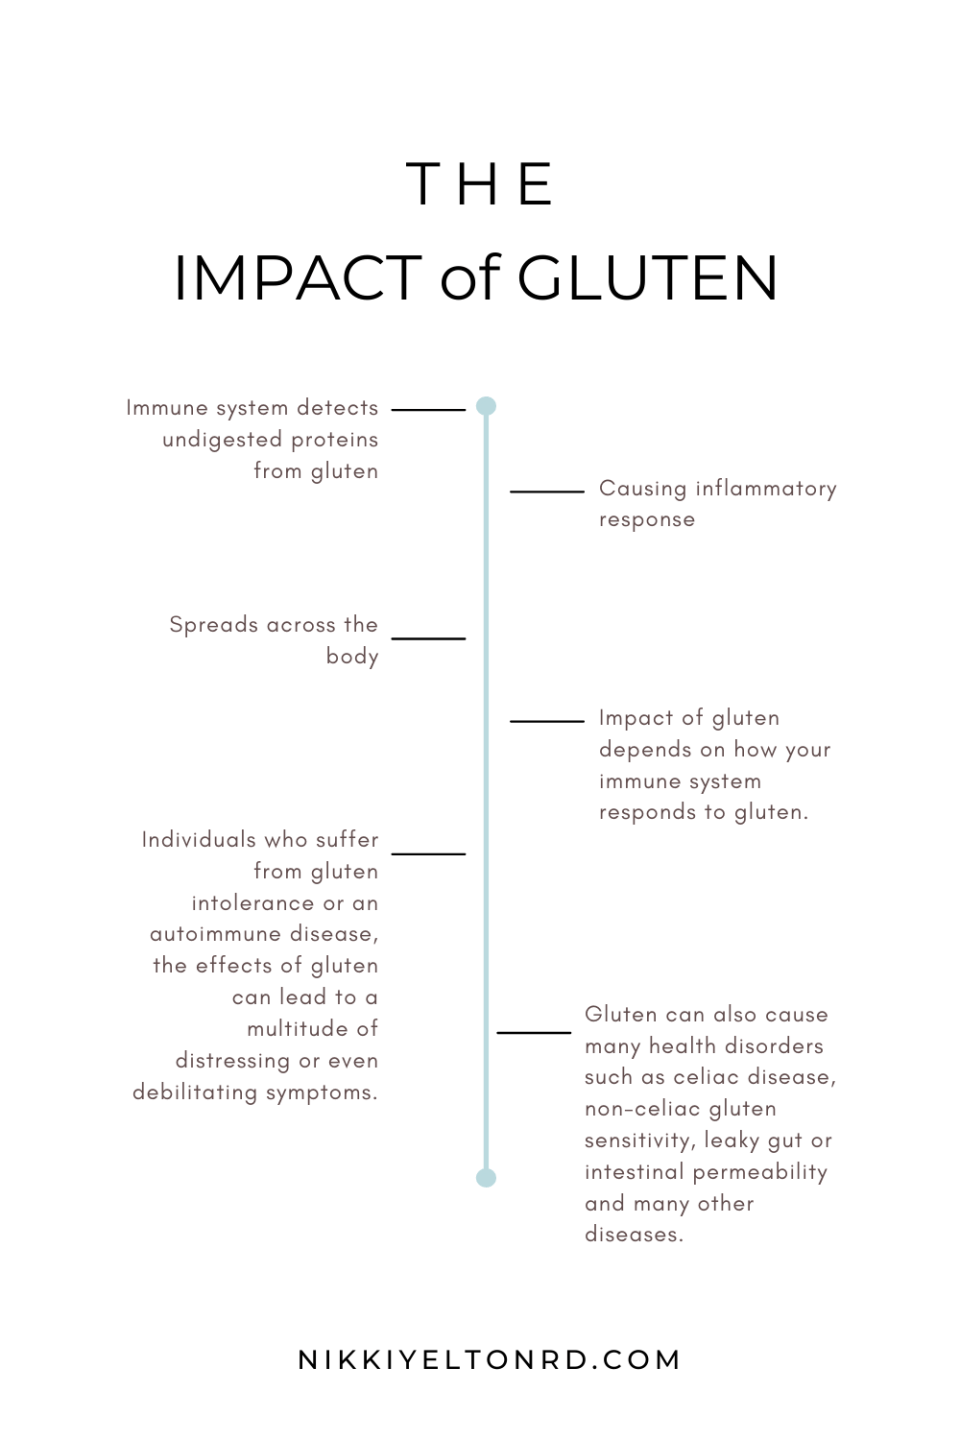 What occurs in the body when eating gluten and not adhering to a gluten free diet